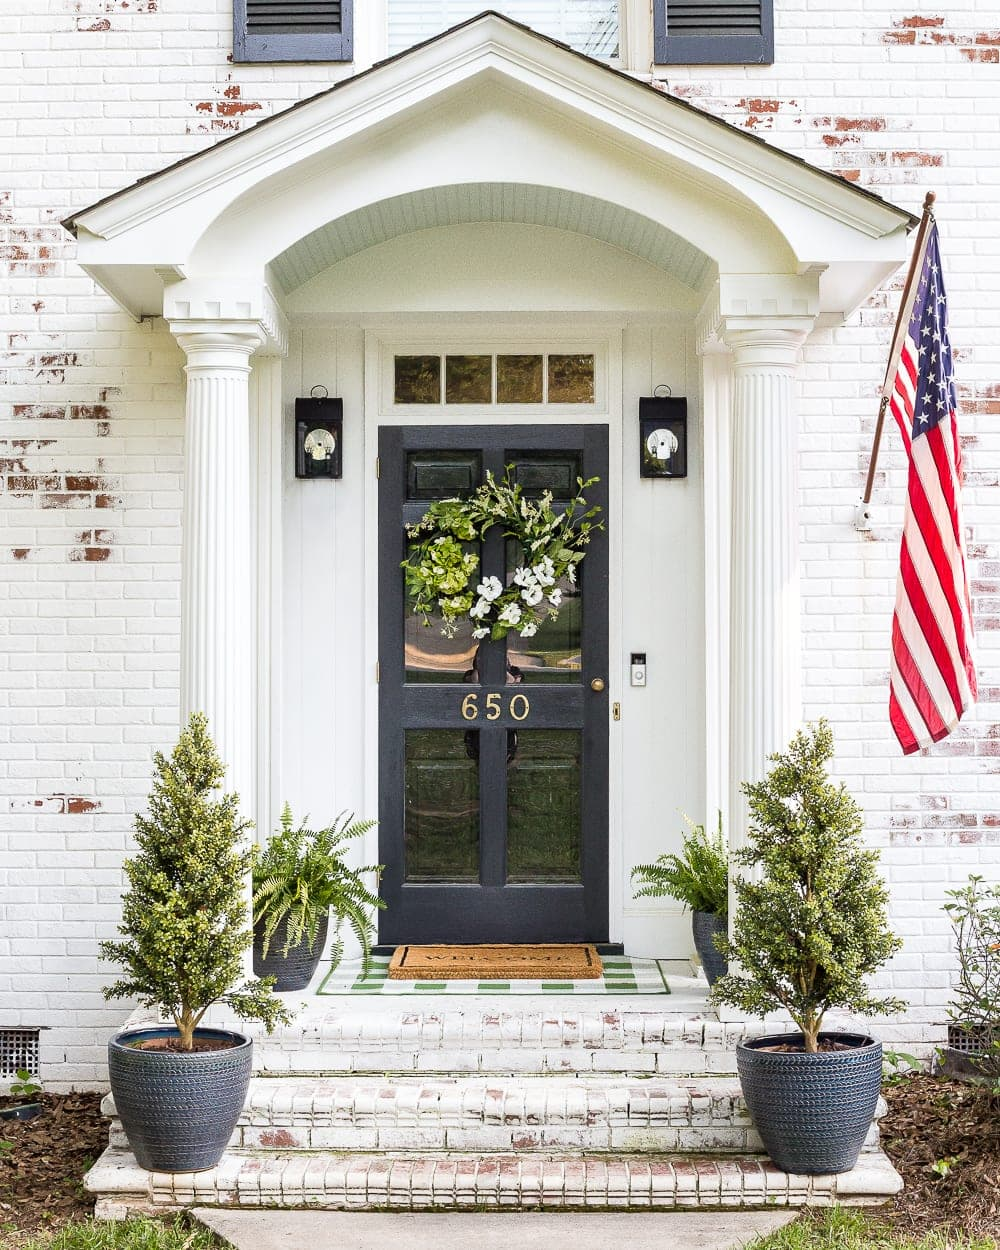 A house exterior makeover update with landscaping changes, new porch lights, and decor for summer to make an inviting, bright entrance. #porch #summerdecor #landscaping #summerporch #porchlights #outdoorlighting #limewashing #limewashedbrick #brickexterior #summerhouse #colonial #colonialhouse